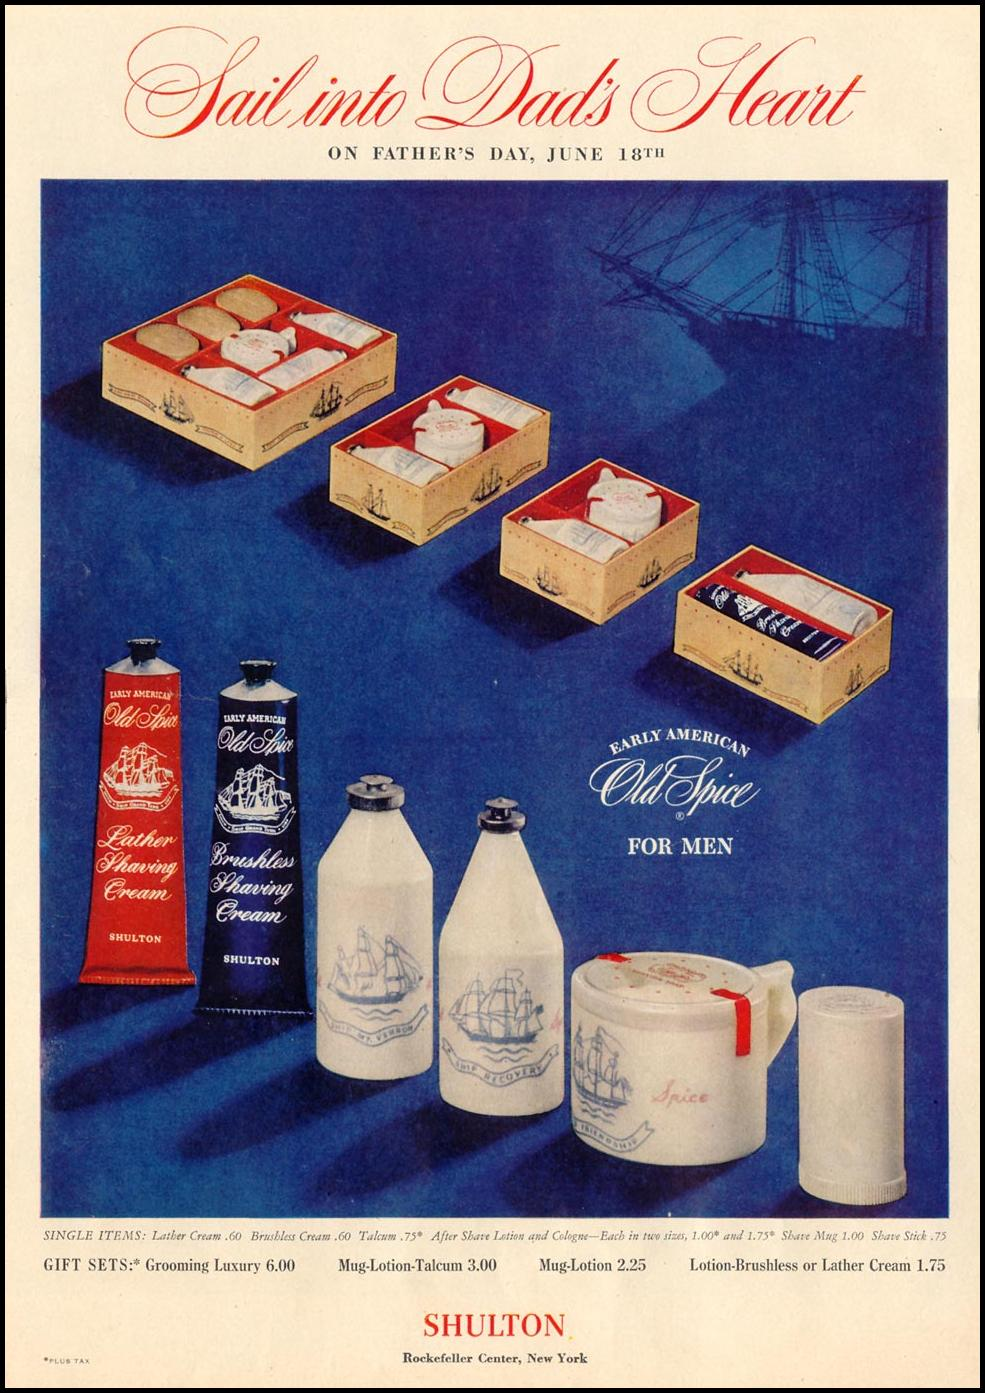 OLD SPICE FOR MEN LIFE 06/05/1950 p. 112